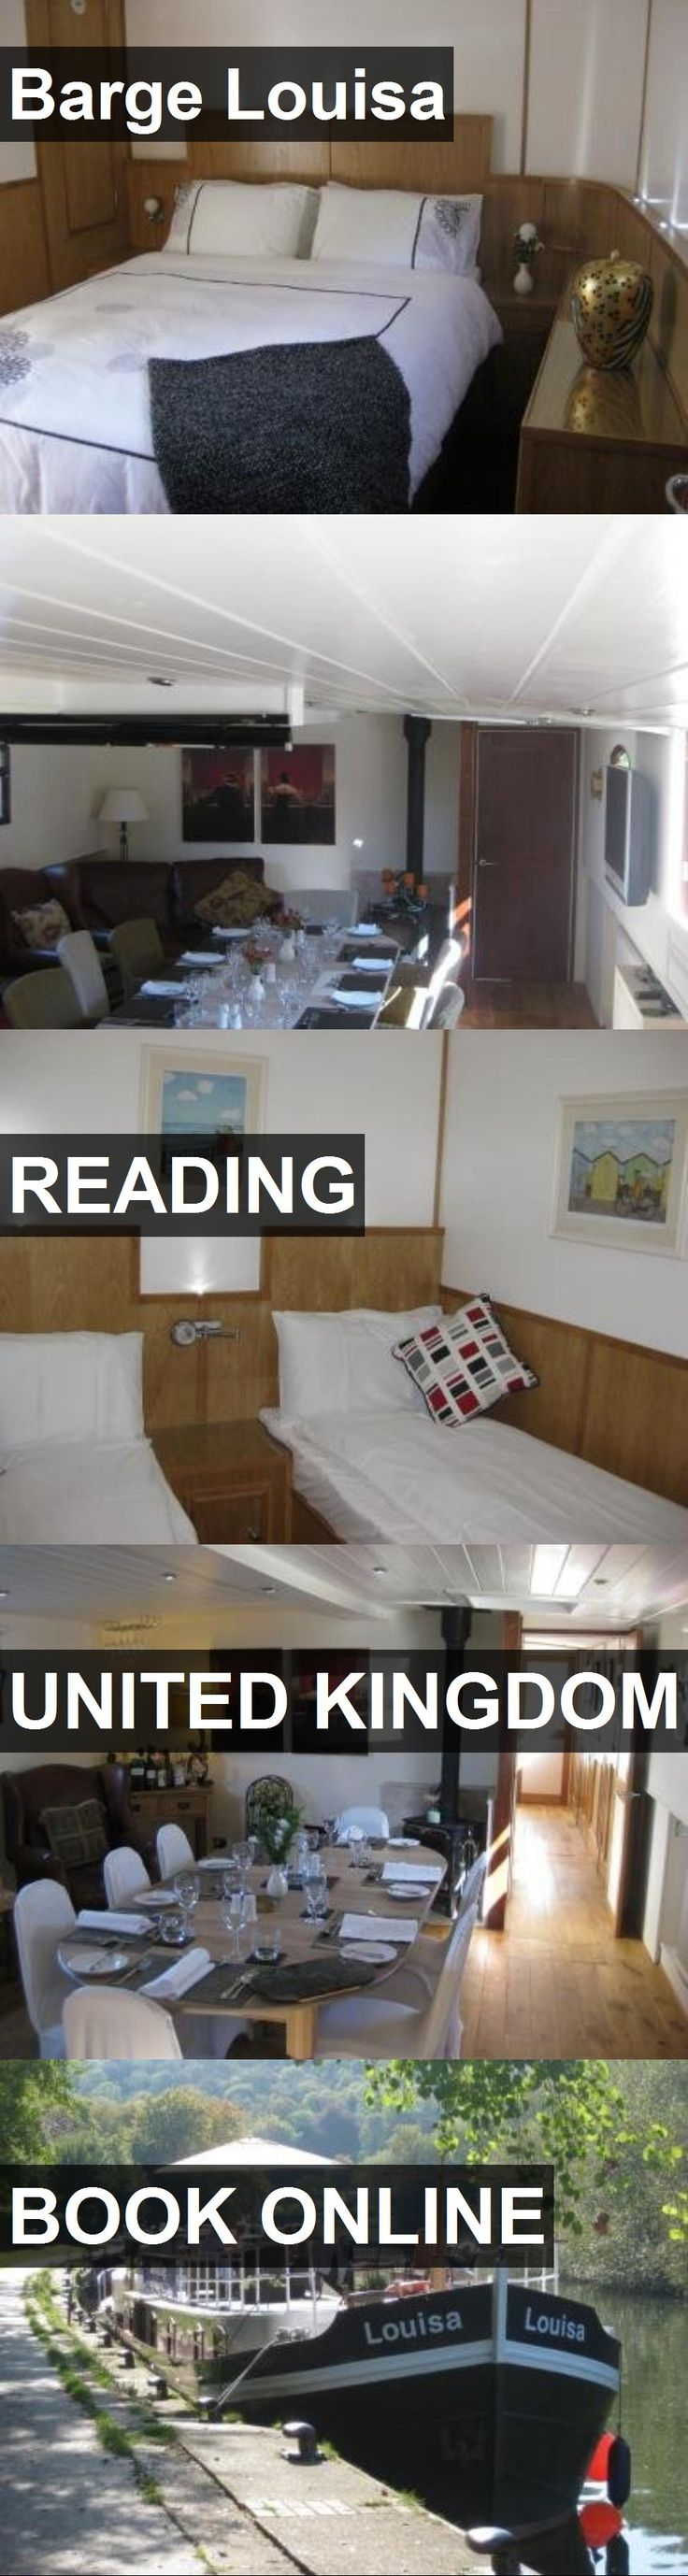 Hotel Barge Louisa in Reading, United Kingdom. For more information, photos, reviews and best prices please follow the link. #UnitedKingdom #Reading #BargeLouisa #hotel #travel #vacation